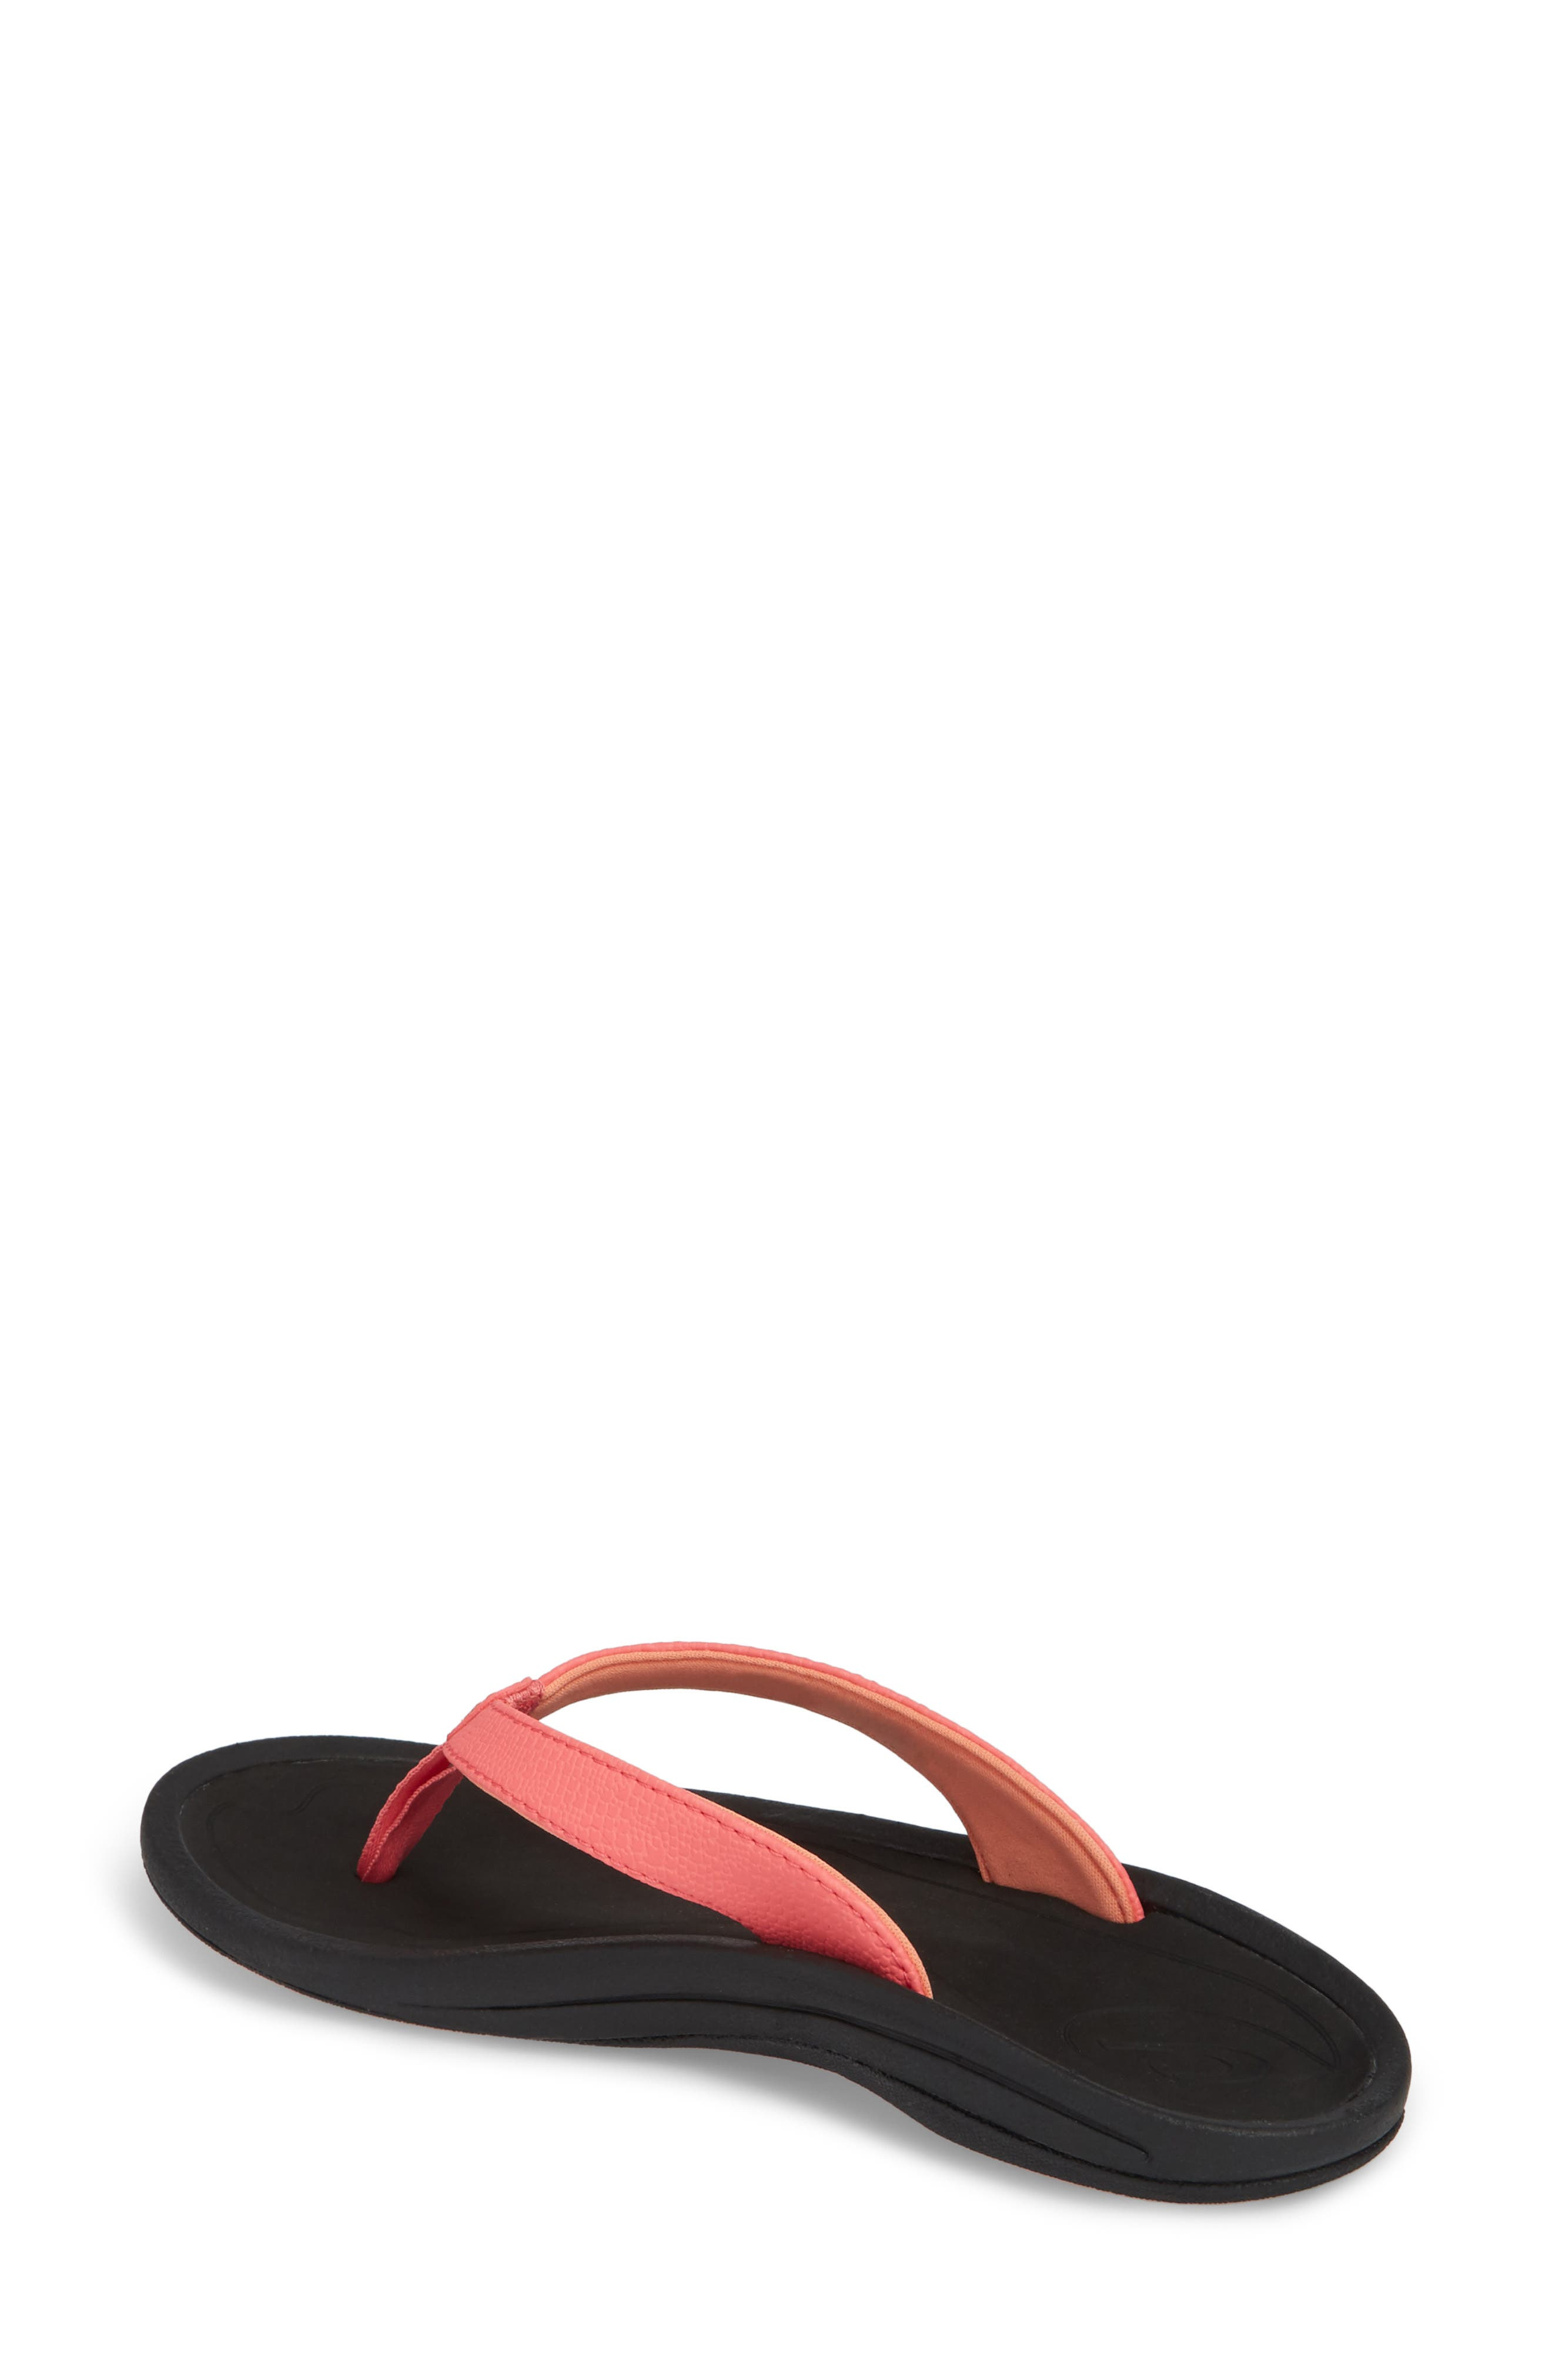 'Kulapa Kai' Thong Sandal,                             Alternate thumbnail 2, color,                             Guava Jelly/ Black Faux